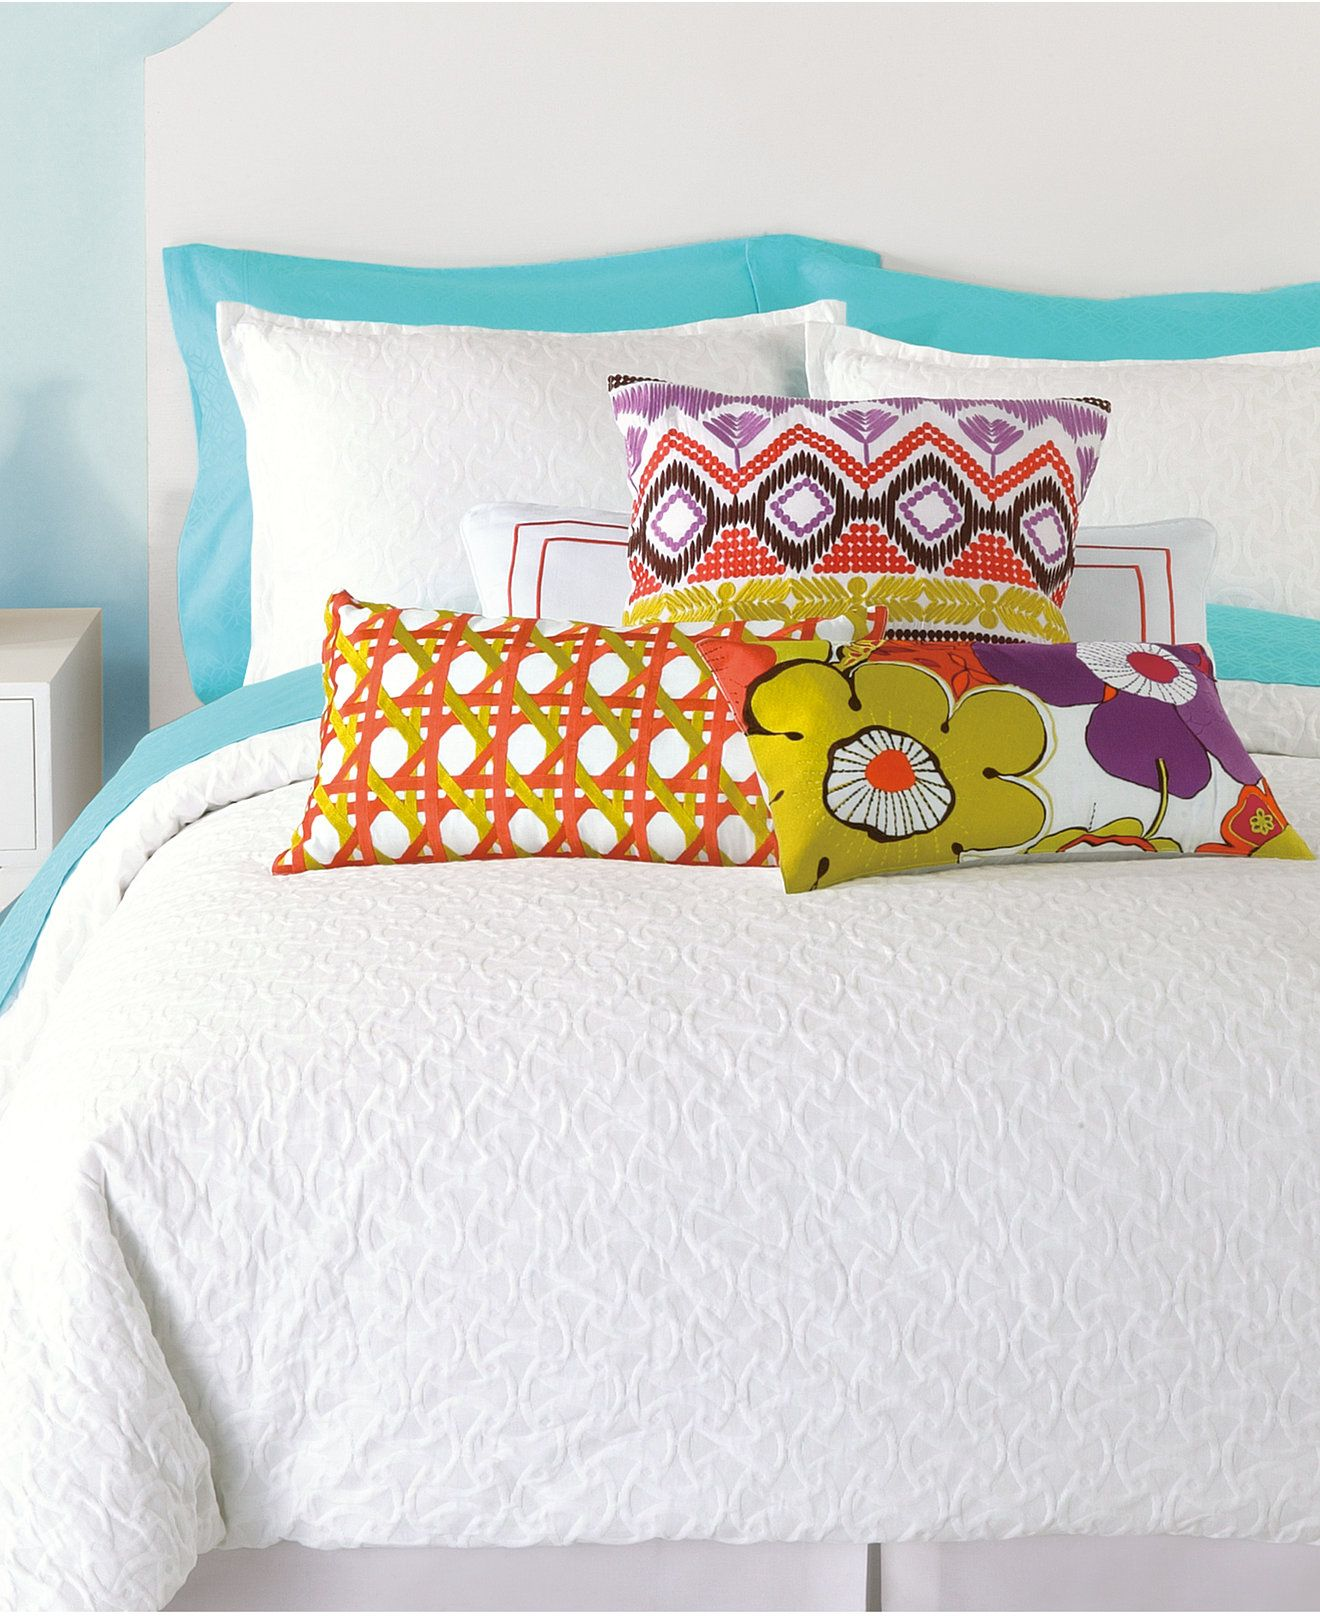 upload or himmeli unisonhome pillows matelasse gray your sum shop unison cover style look duvet the share